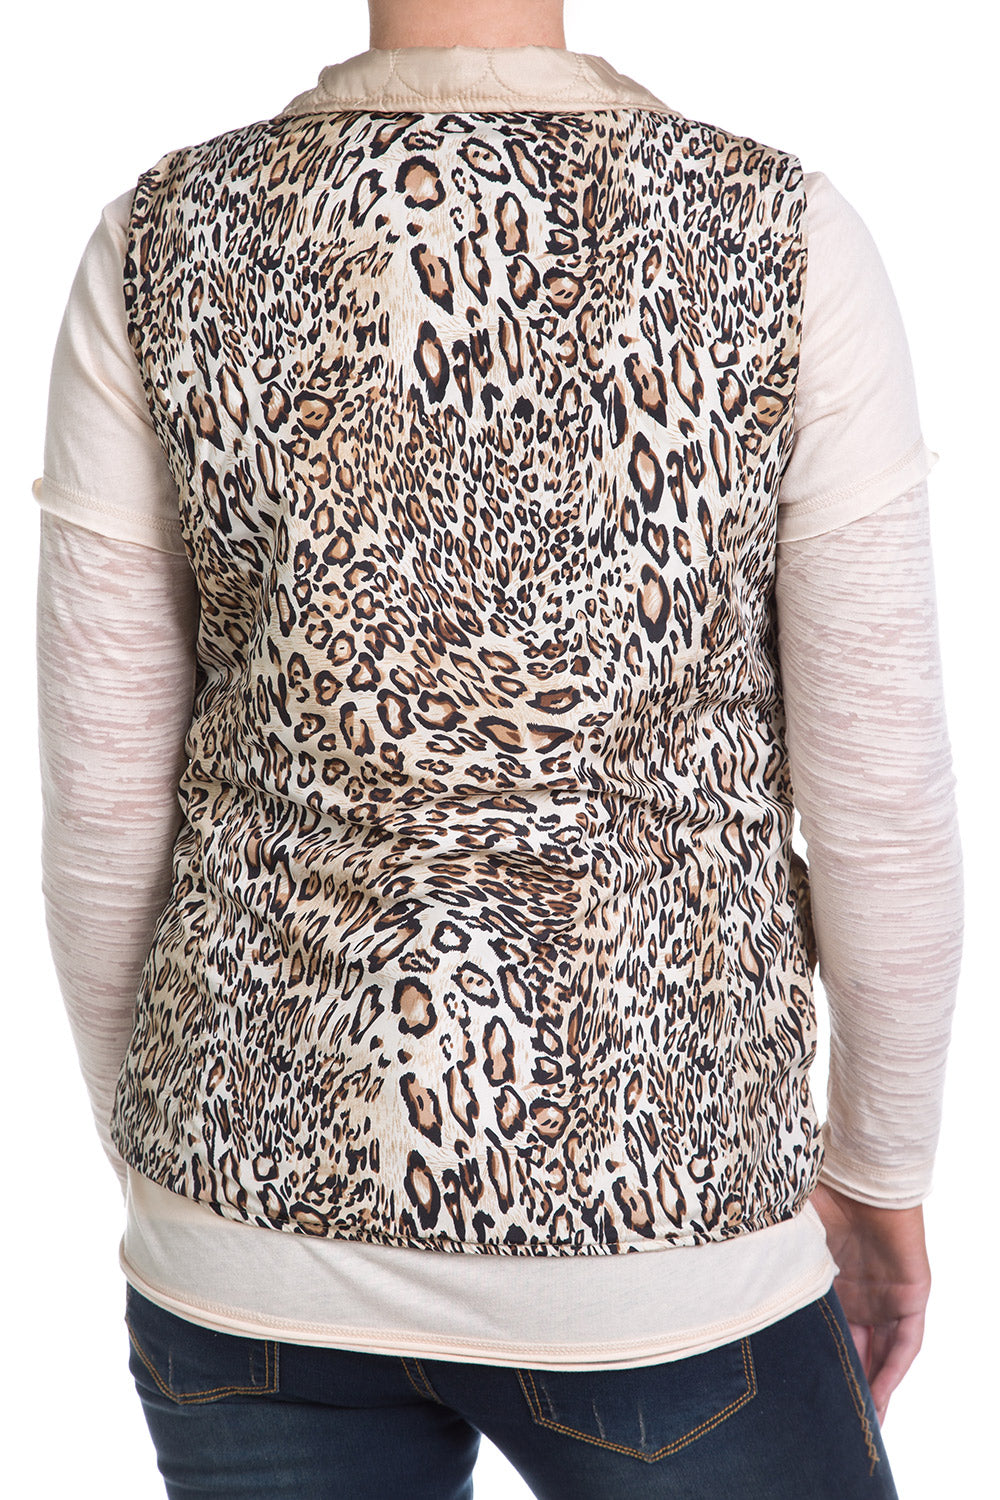 Type 3 Cheetah Gold Vest